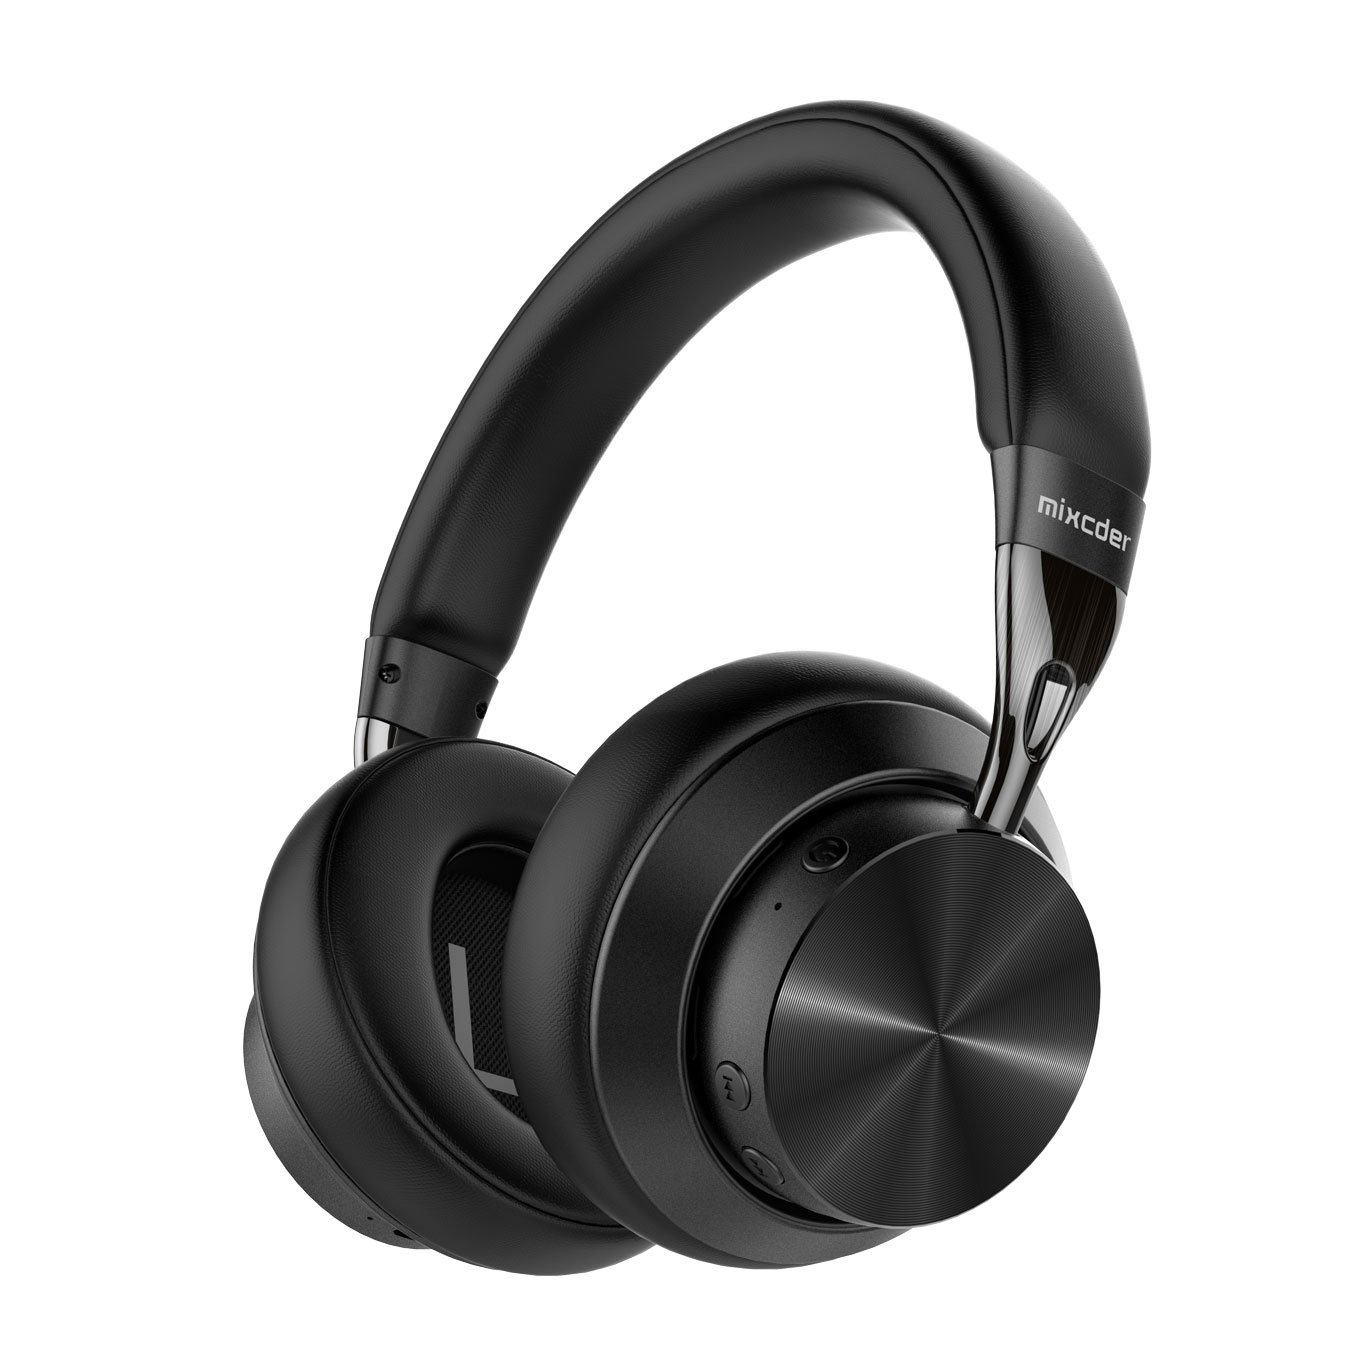 Mixcder E10 Headphones